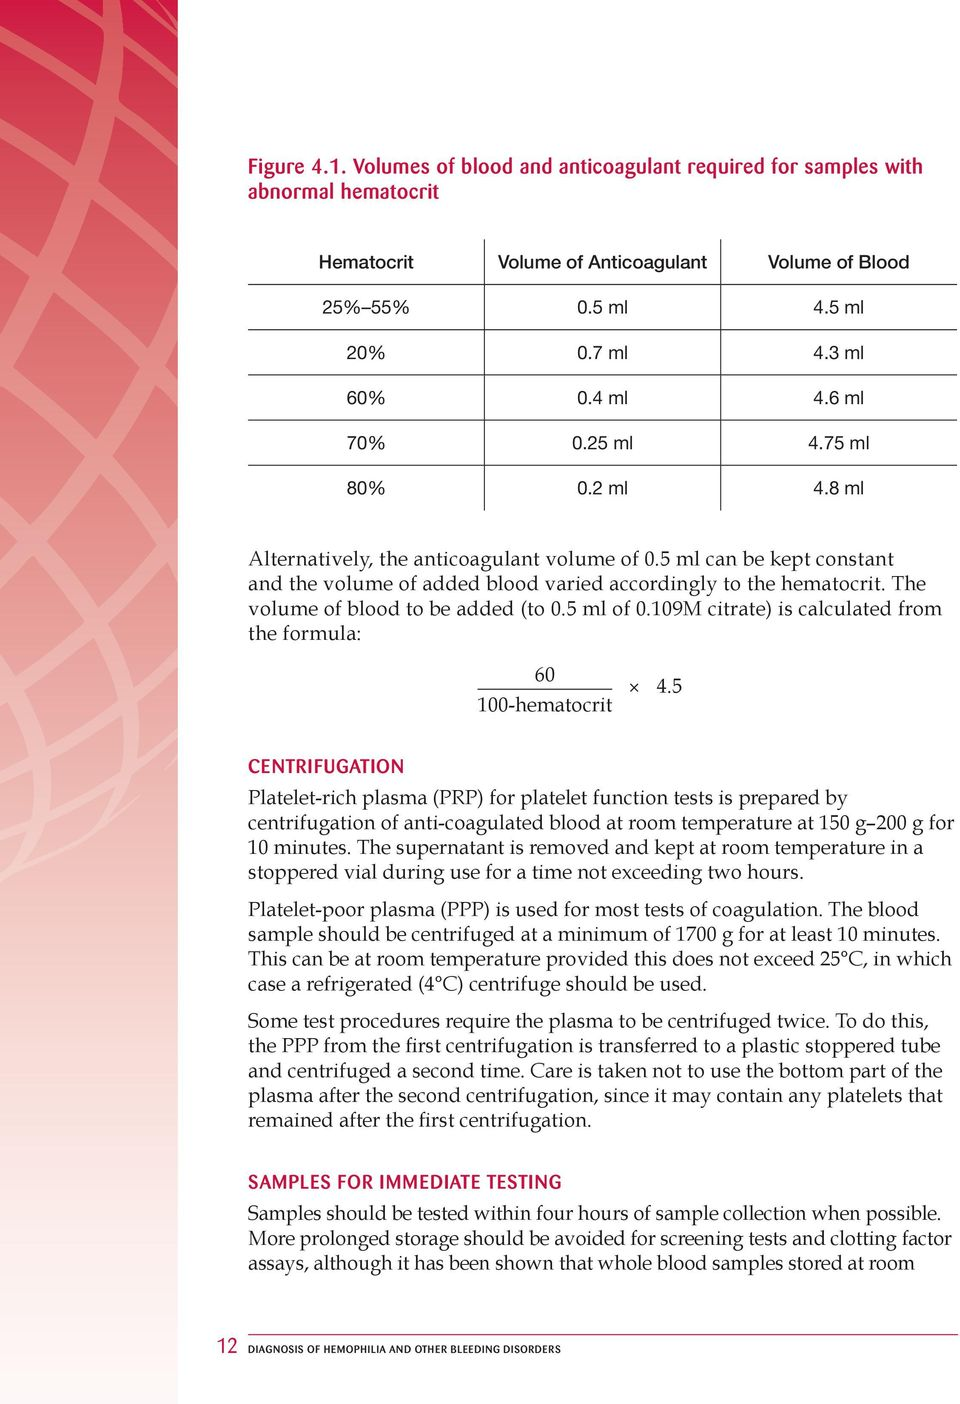 The volume of blood to be added (to 0.5 ml of 0.109M citrate) is calculated from the formula: 60 100-hematocrit 4.